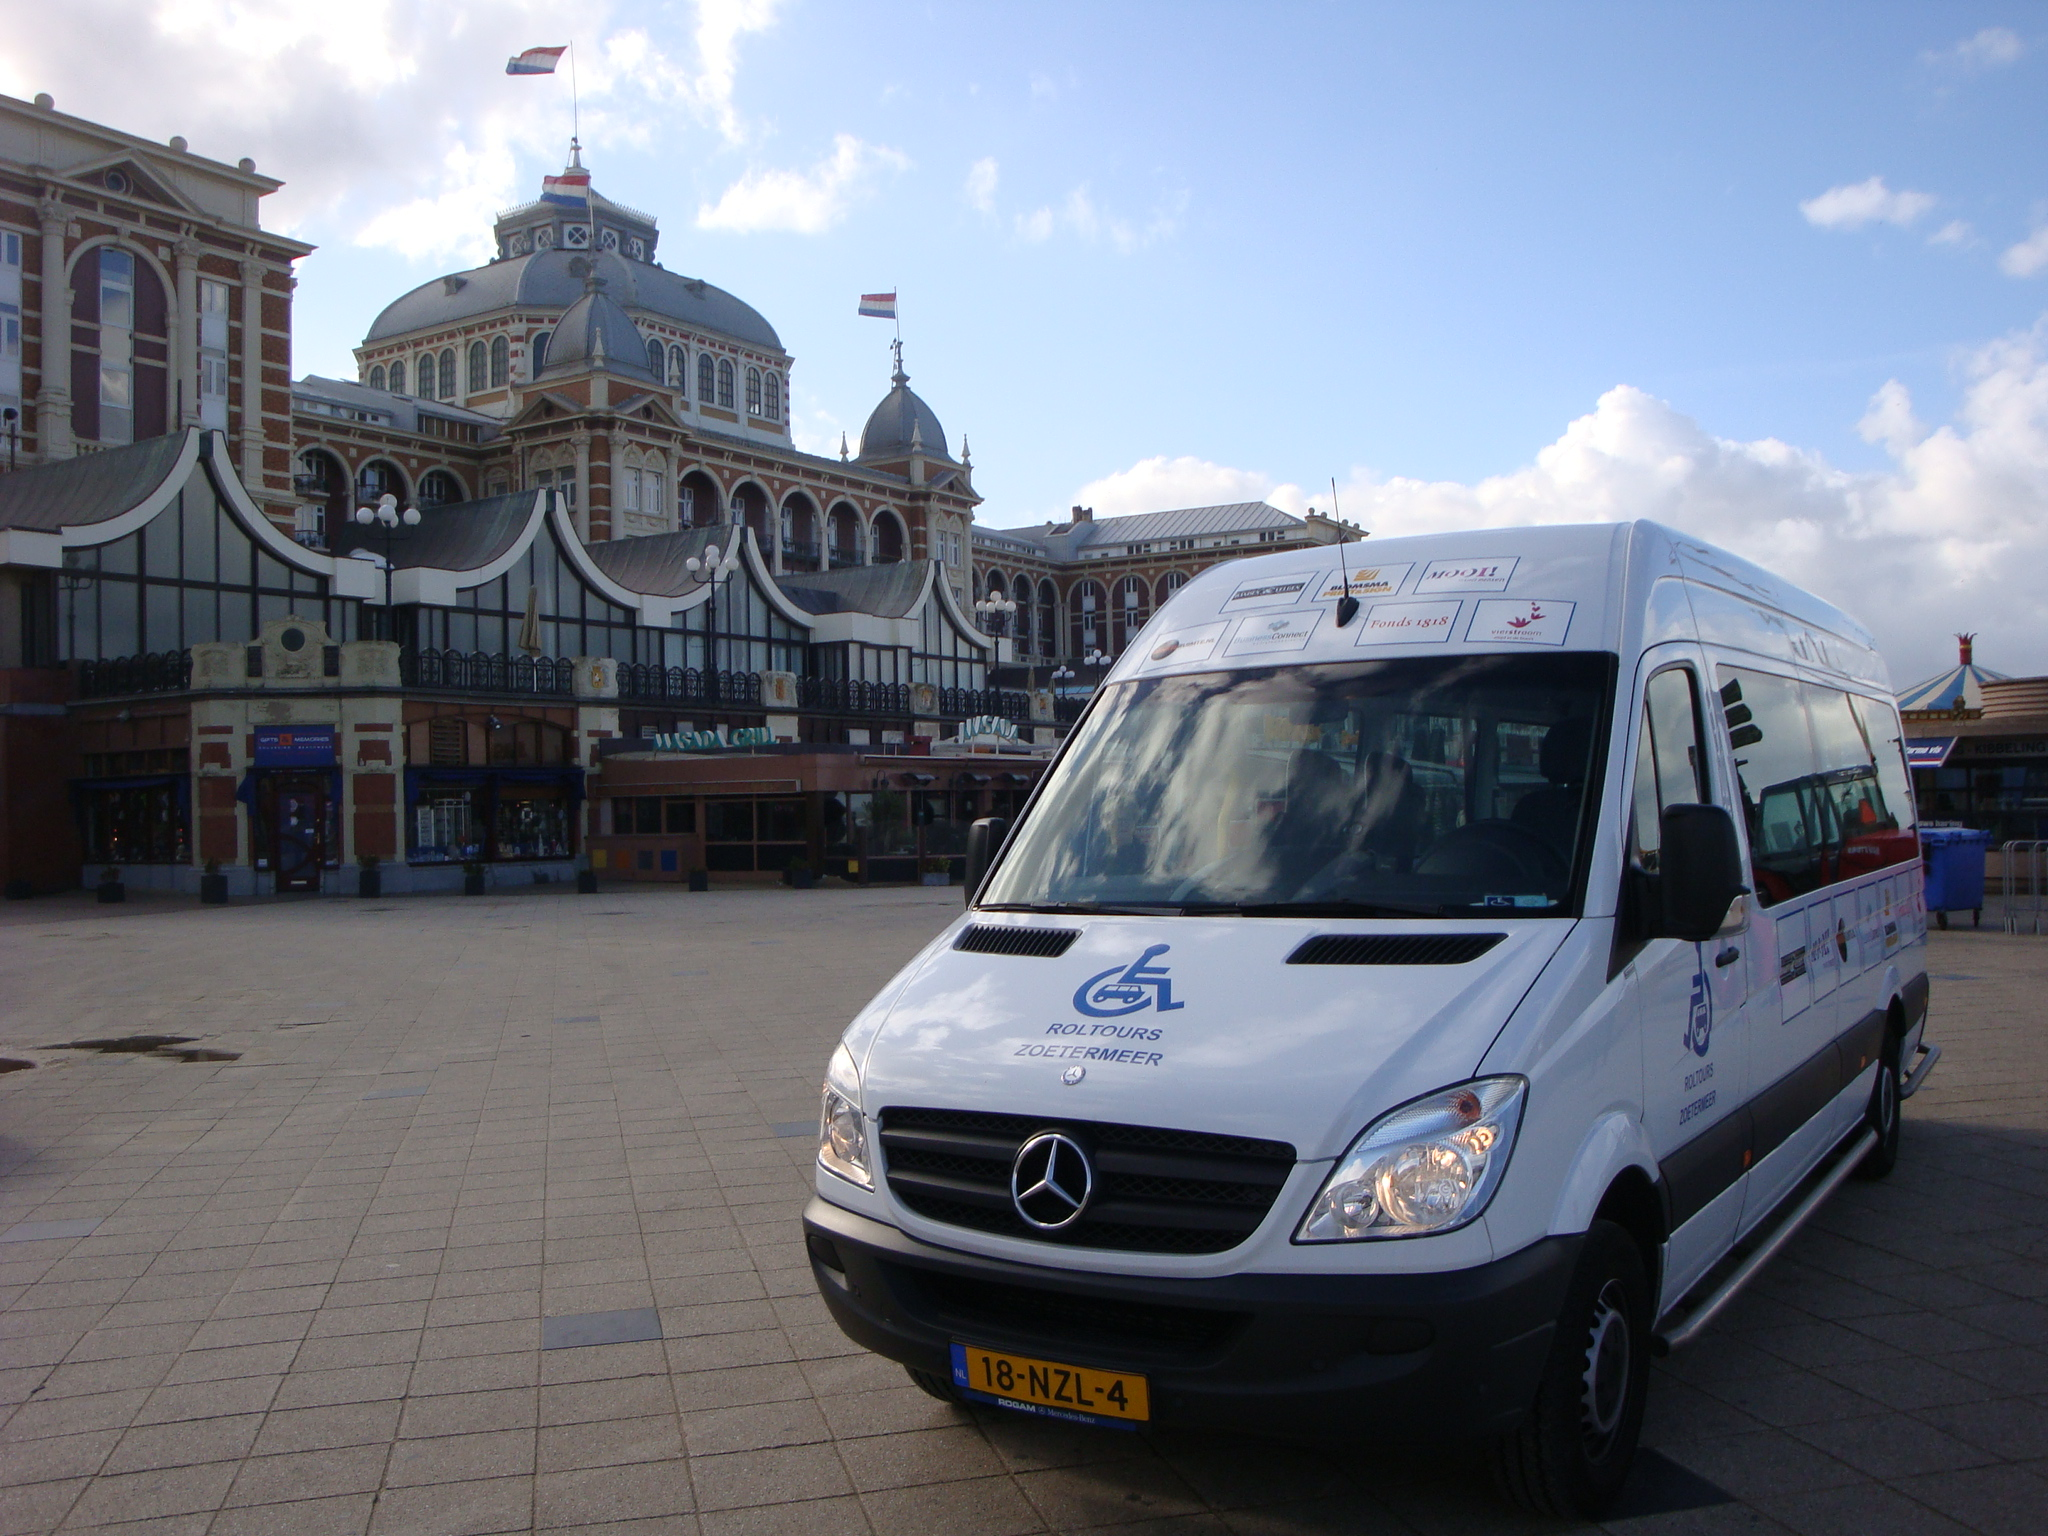 Stichting Roltours